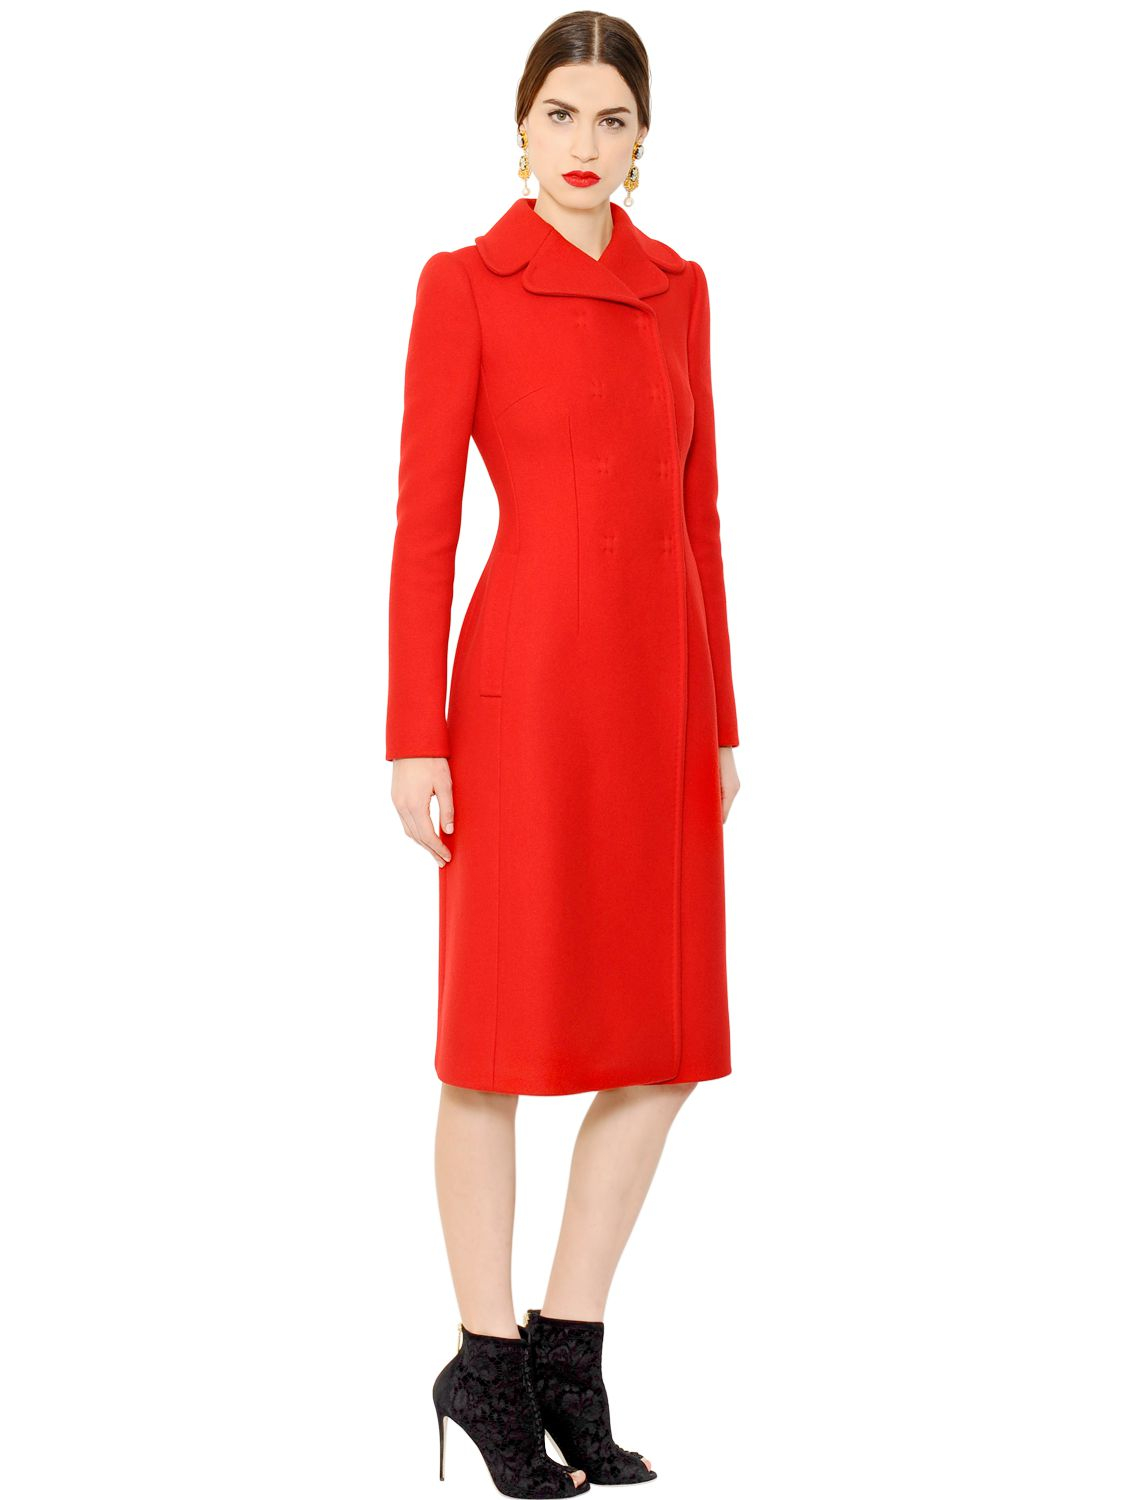 Dolce & gabbana Wool & Cashmere Coat in Red | Lyst